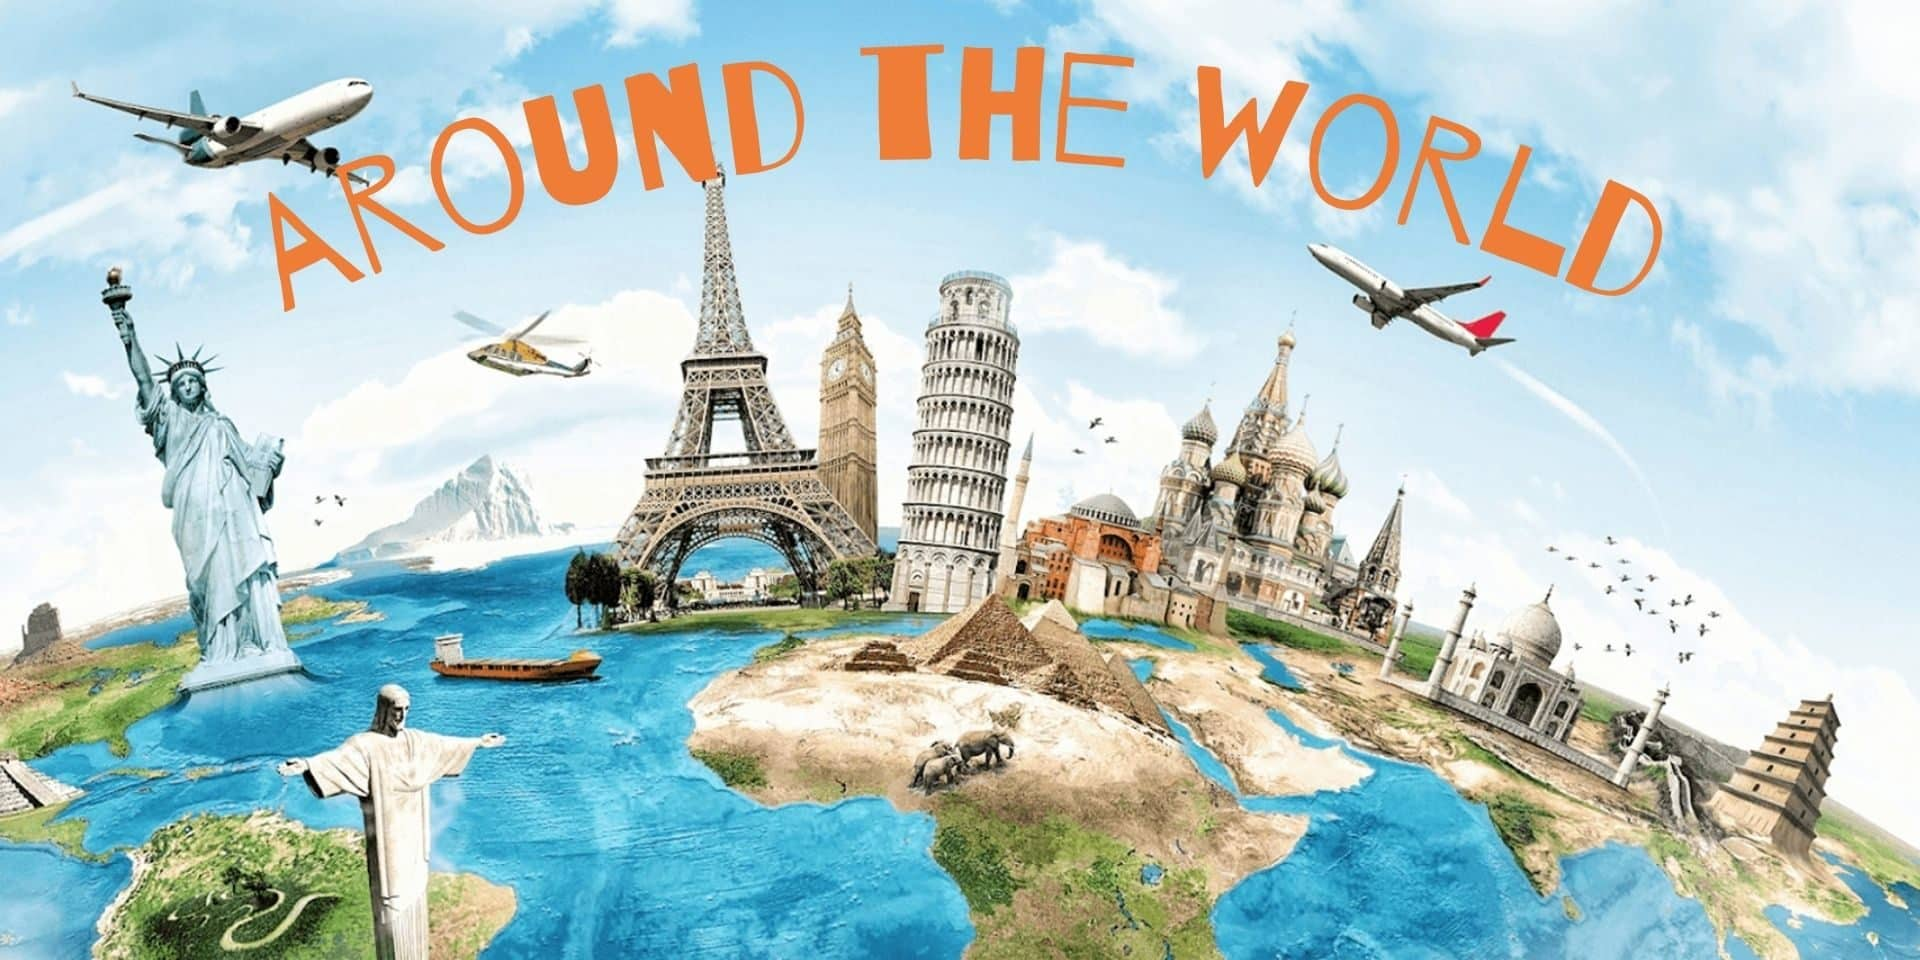 Lots of World landmarks placed on a globe with two aeroplanes flying overhead.